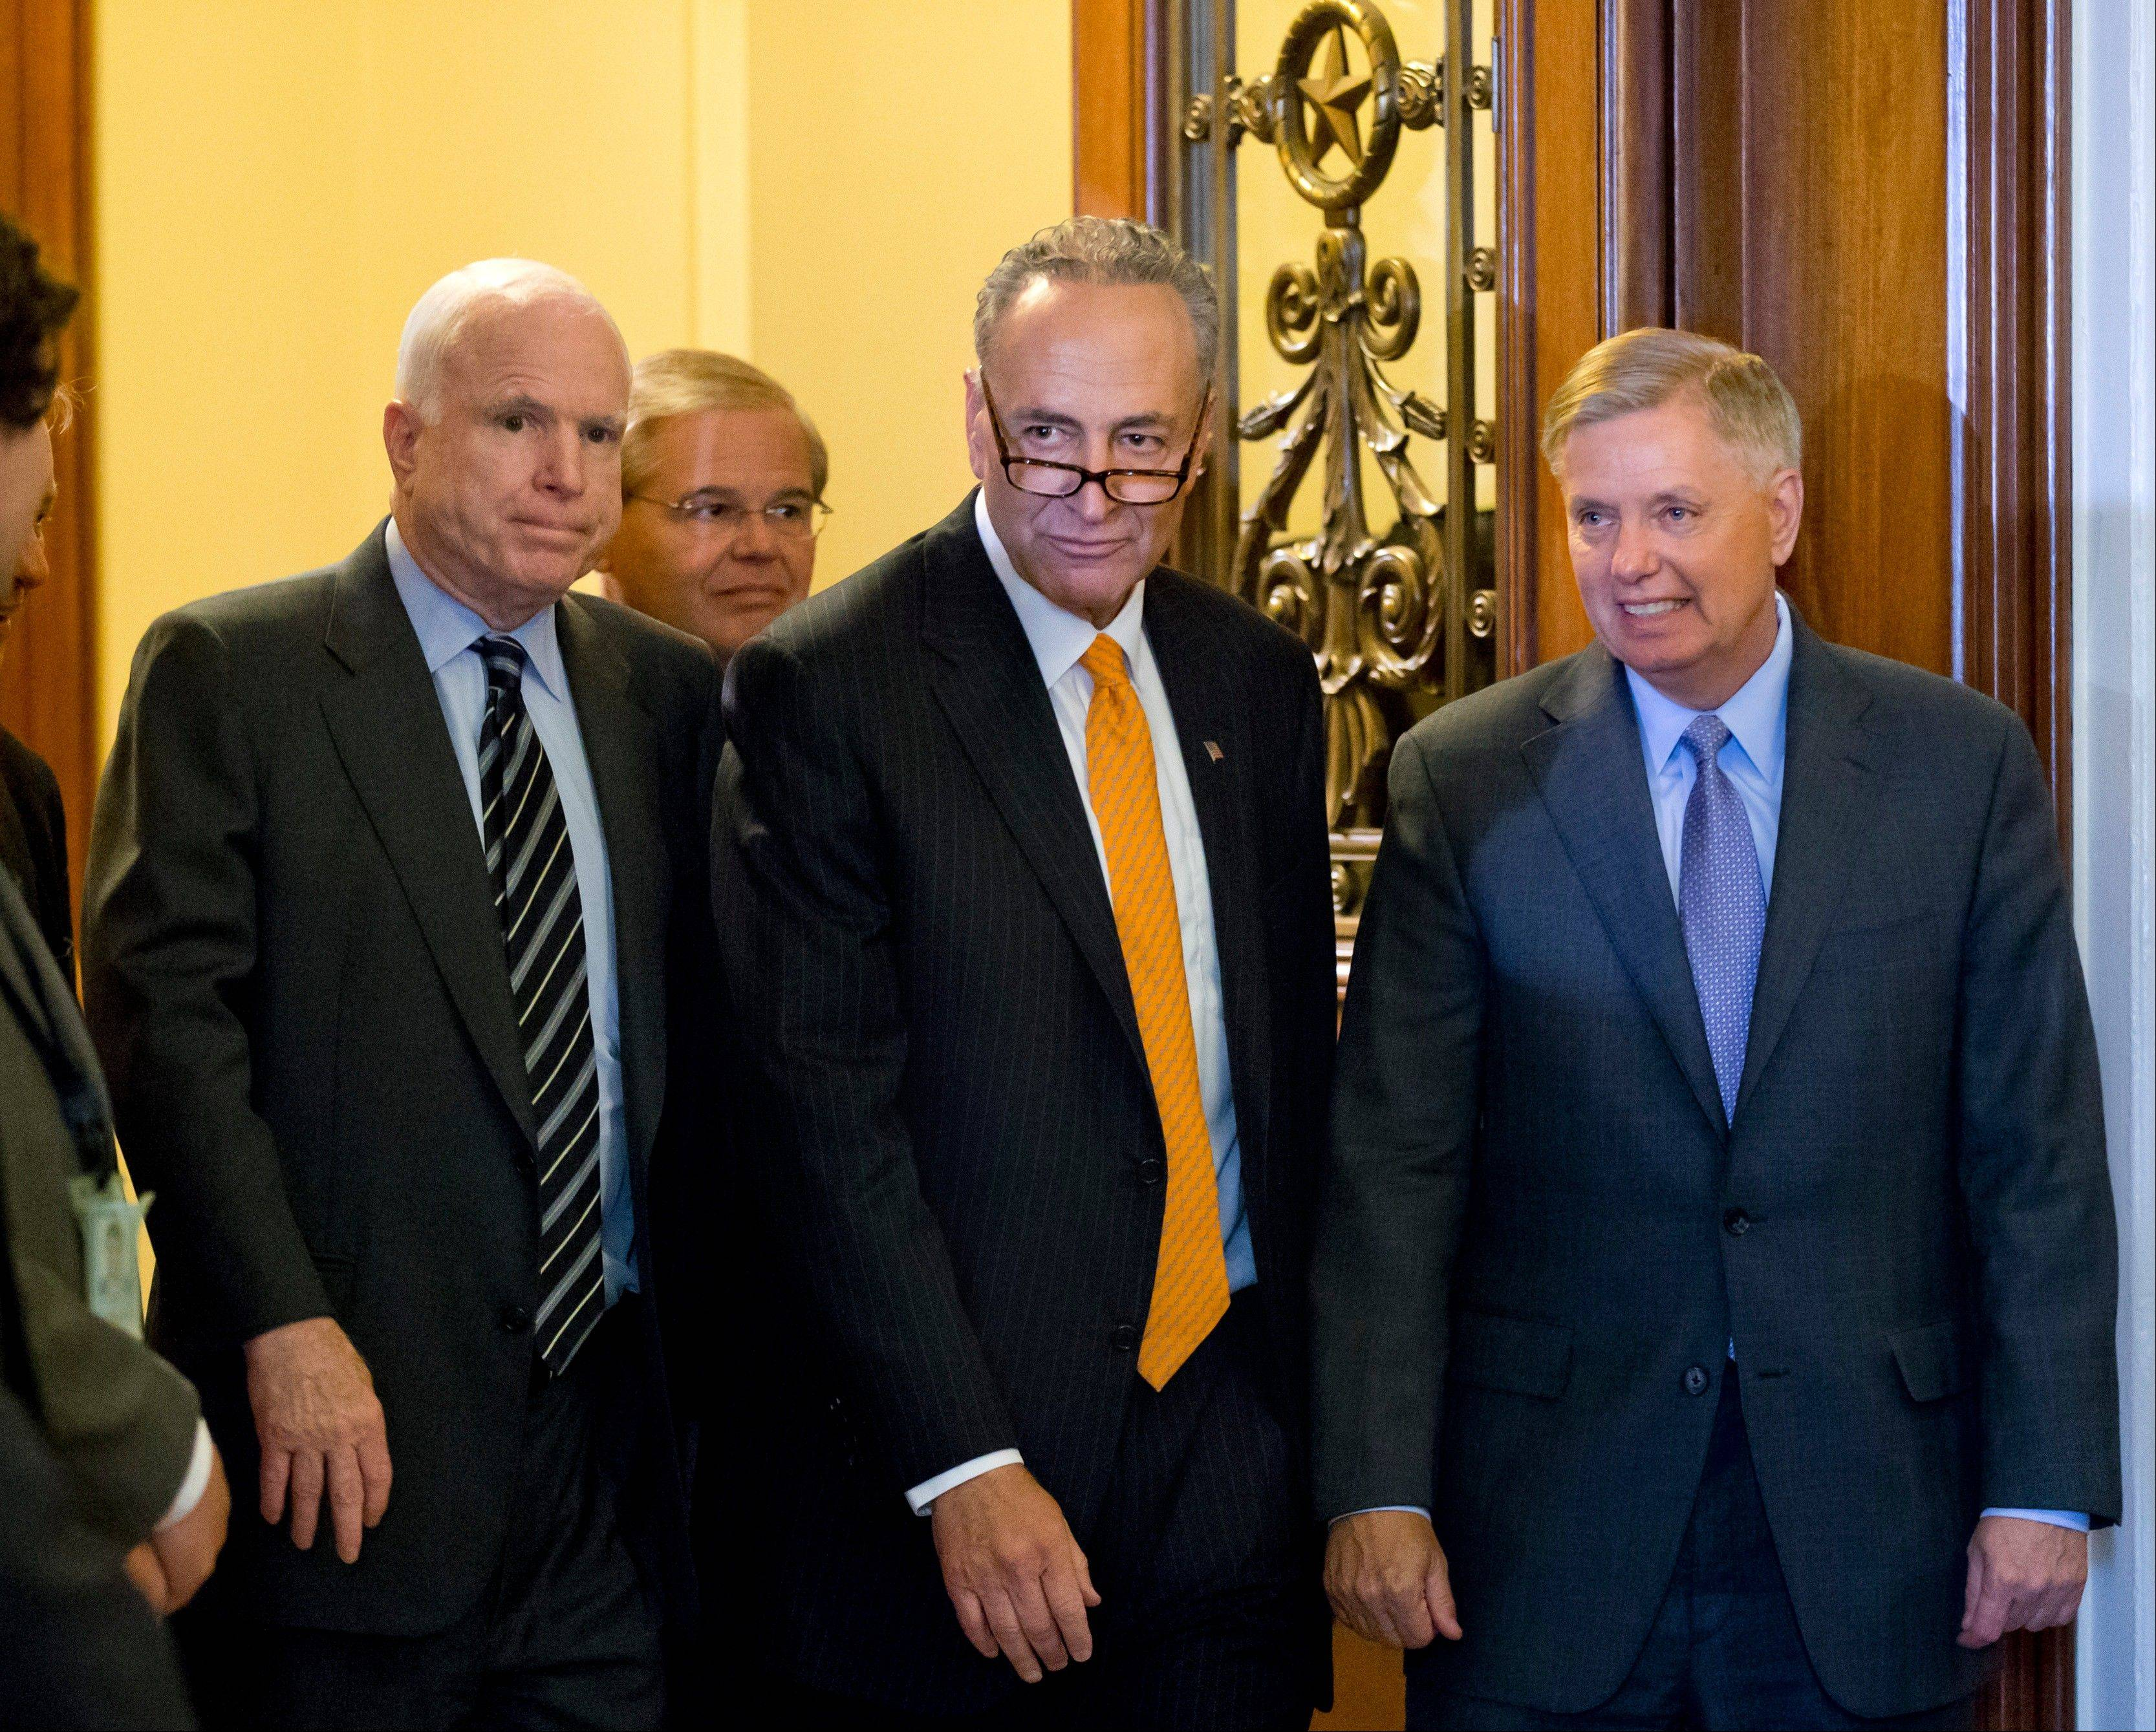 "Members of the bipartisan ""Gang of Eight"" who crafted the immigration reform bill, Sen. Chuck Schumer, D-N.Y., center, flanked by Sen. John McCain, R-Ariz., left, and Sen. Lindsey Graham, R-S.C., leave the floor after final passage in the Senate, at the Capitol in Washington, Thursday, June 27, 2013. Sen. Robert Menendez, D-N.J., follows at rear. In remarks to reporters, Sen. Lindsey Graham, a conservative Republican, praised the leadership of Democrat Chuck Schumer, saying ""Senator Schumer's a worthy successor to Ted Kennedy."""